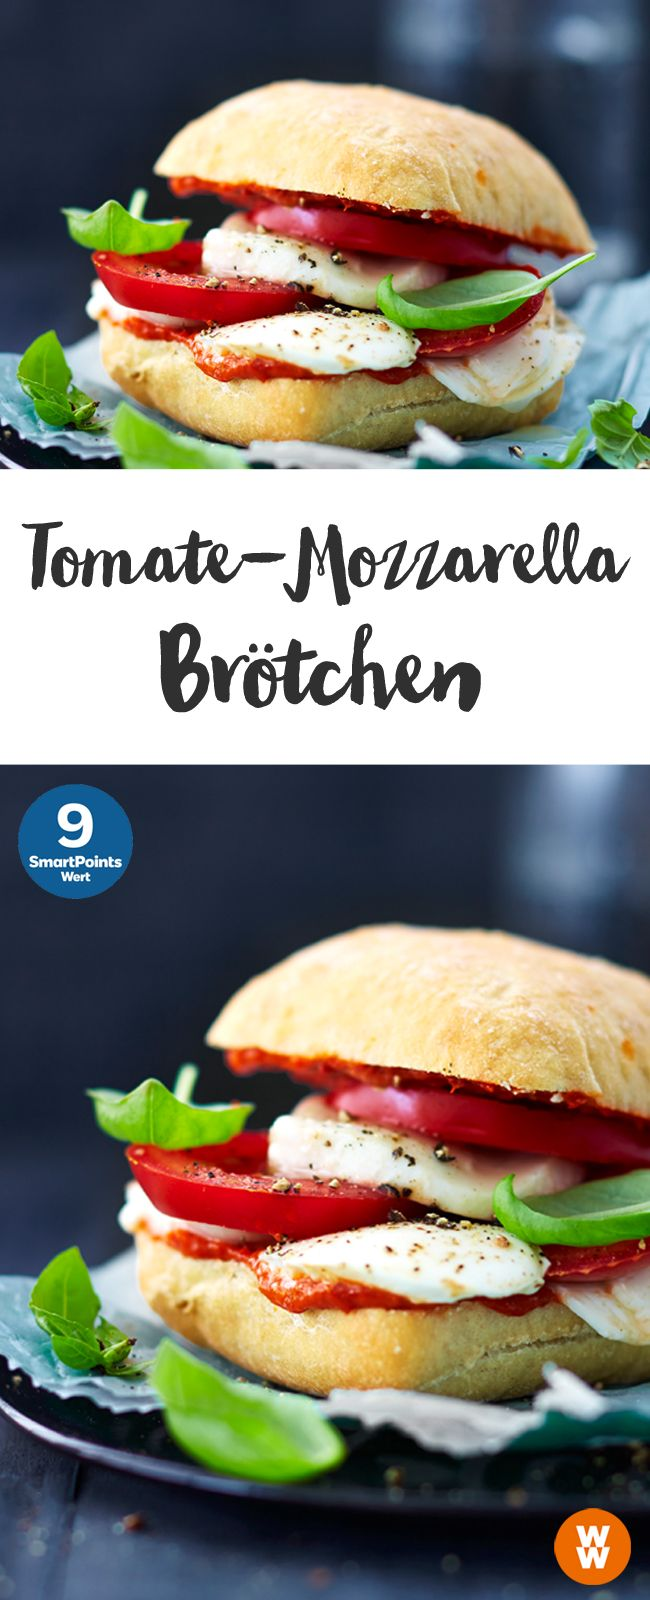 Weight Watchers Schnelle Gerichte Tomaten Mozarella Brötchen 9 Smartpoints Portion Weight